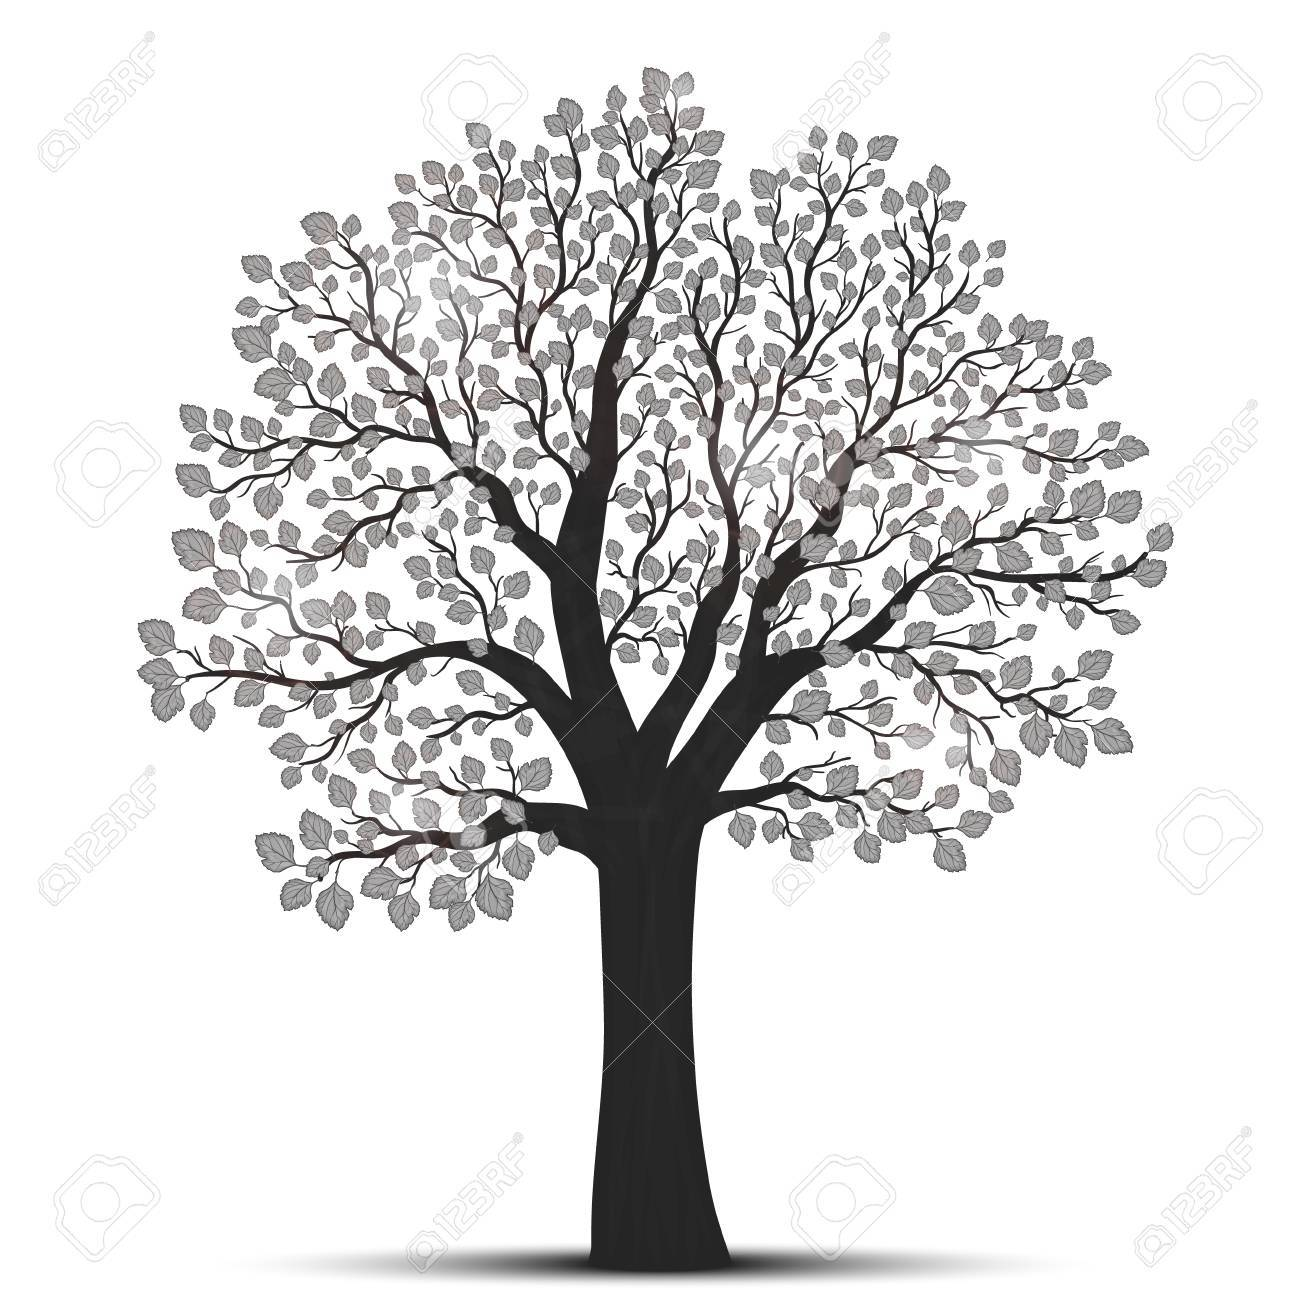 Tree silhouette with leaves - 51358095